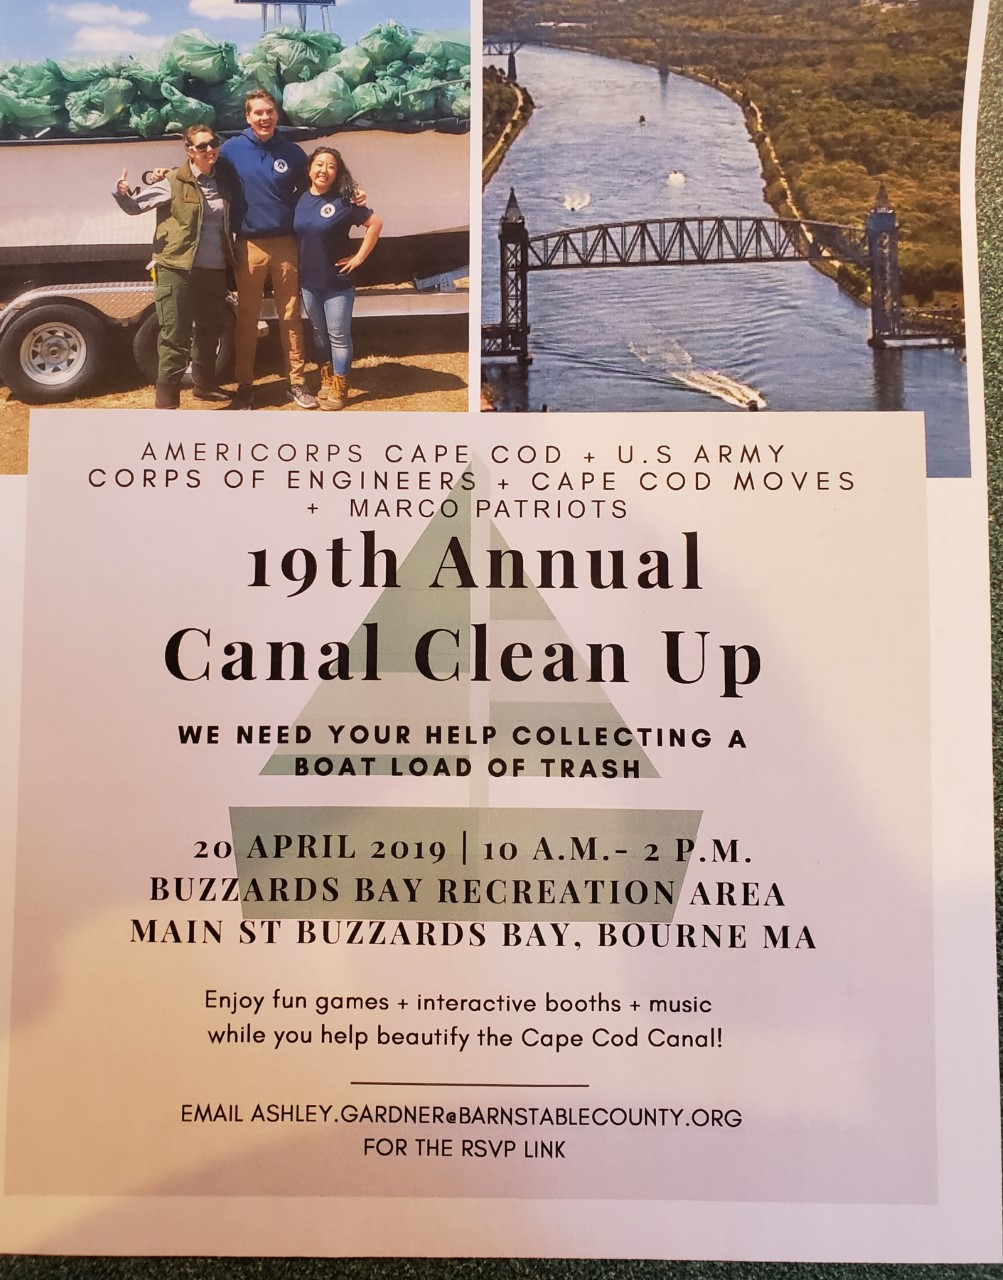 19th Annual Canal Cleanup